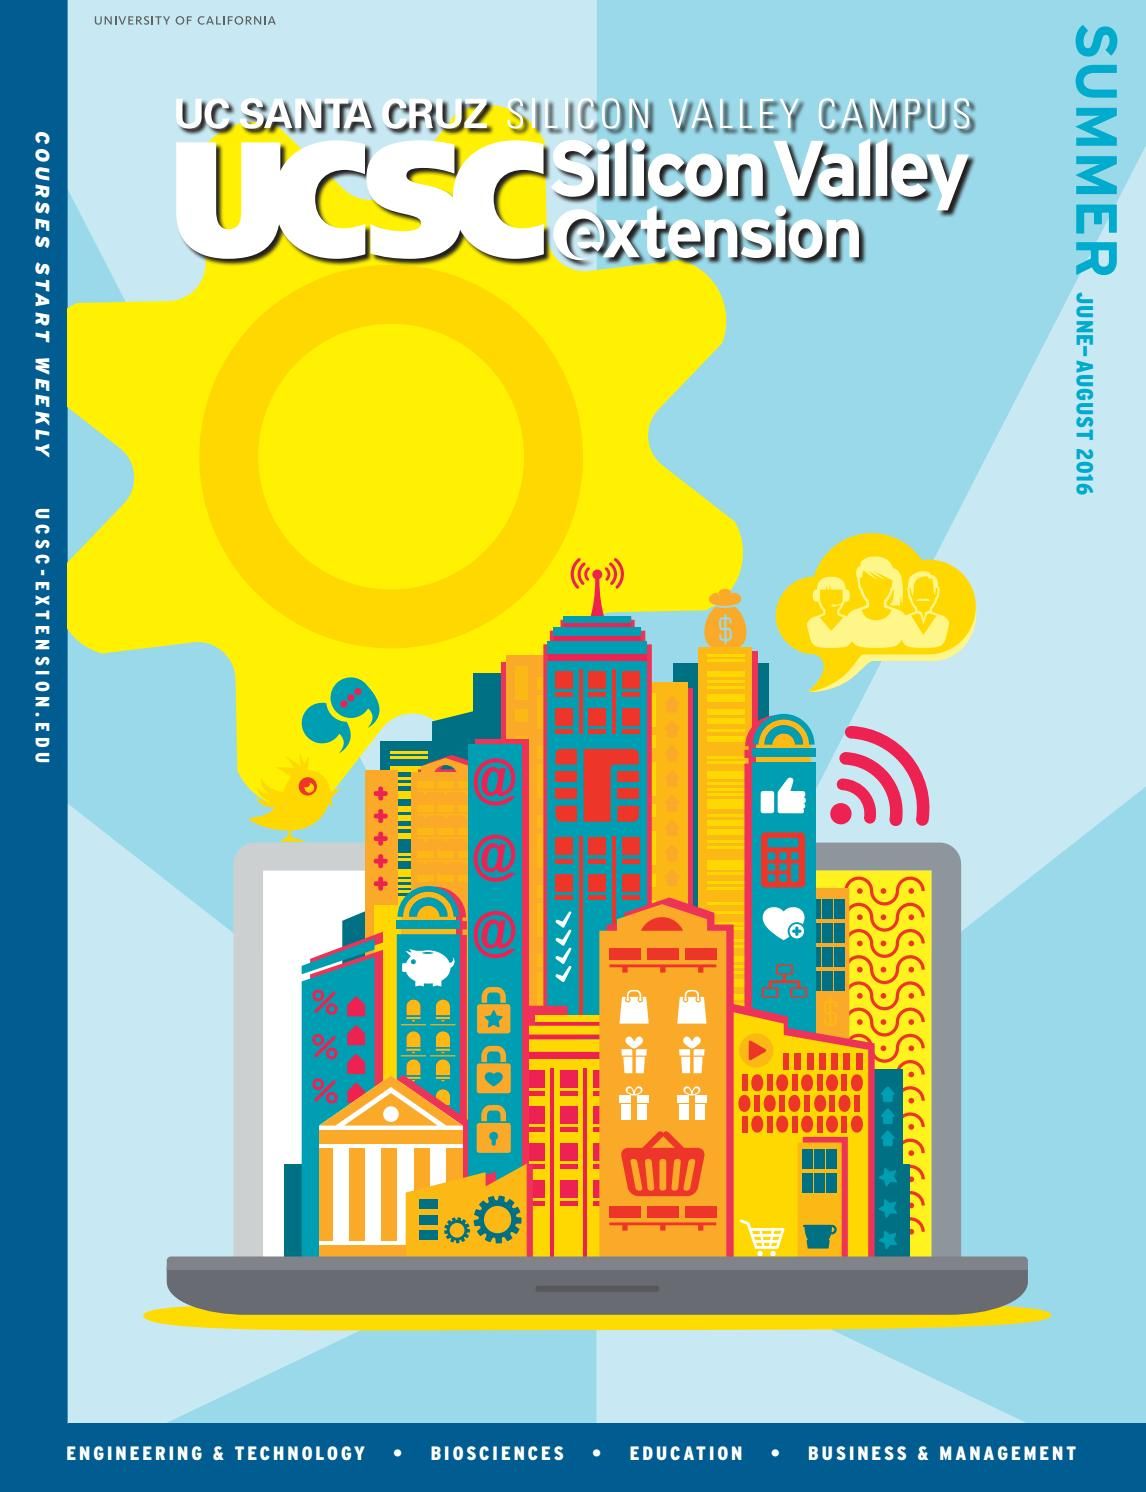 UCSC Silicon Valley Extension Summer 2016 Course Catalog by ... on ucd campus map, berkeley campus map, scu campus map, institute hall wpi campus map, csu campus map, ucsb campus map, boston university campus map, san francisco state university campus map, brown university campus map, michigan campus map, uconn health center campus map, duke university campus map, ucsd campus map, uwo campus map, university of washington campus map, stanford university campus map, nfcc campus map, usd campus map, 3d campus map, uc campus map,